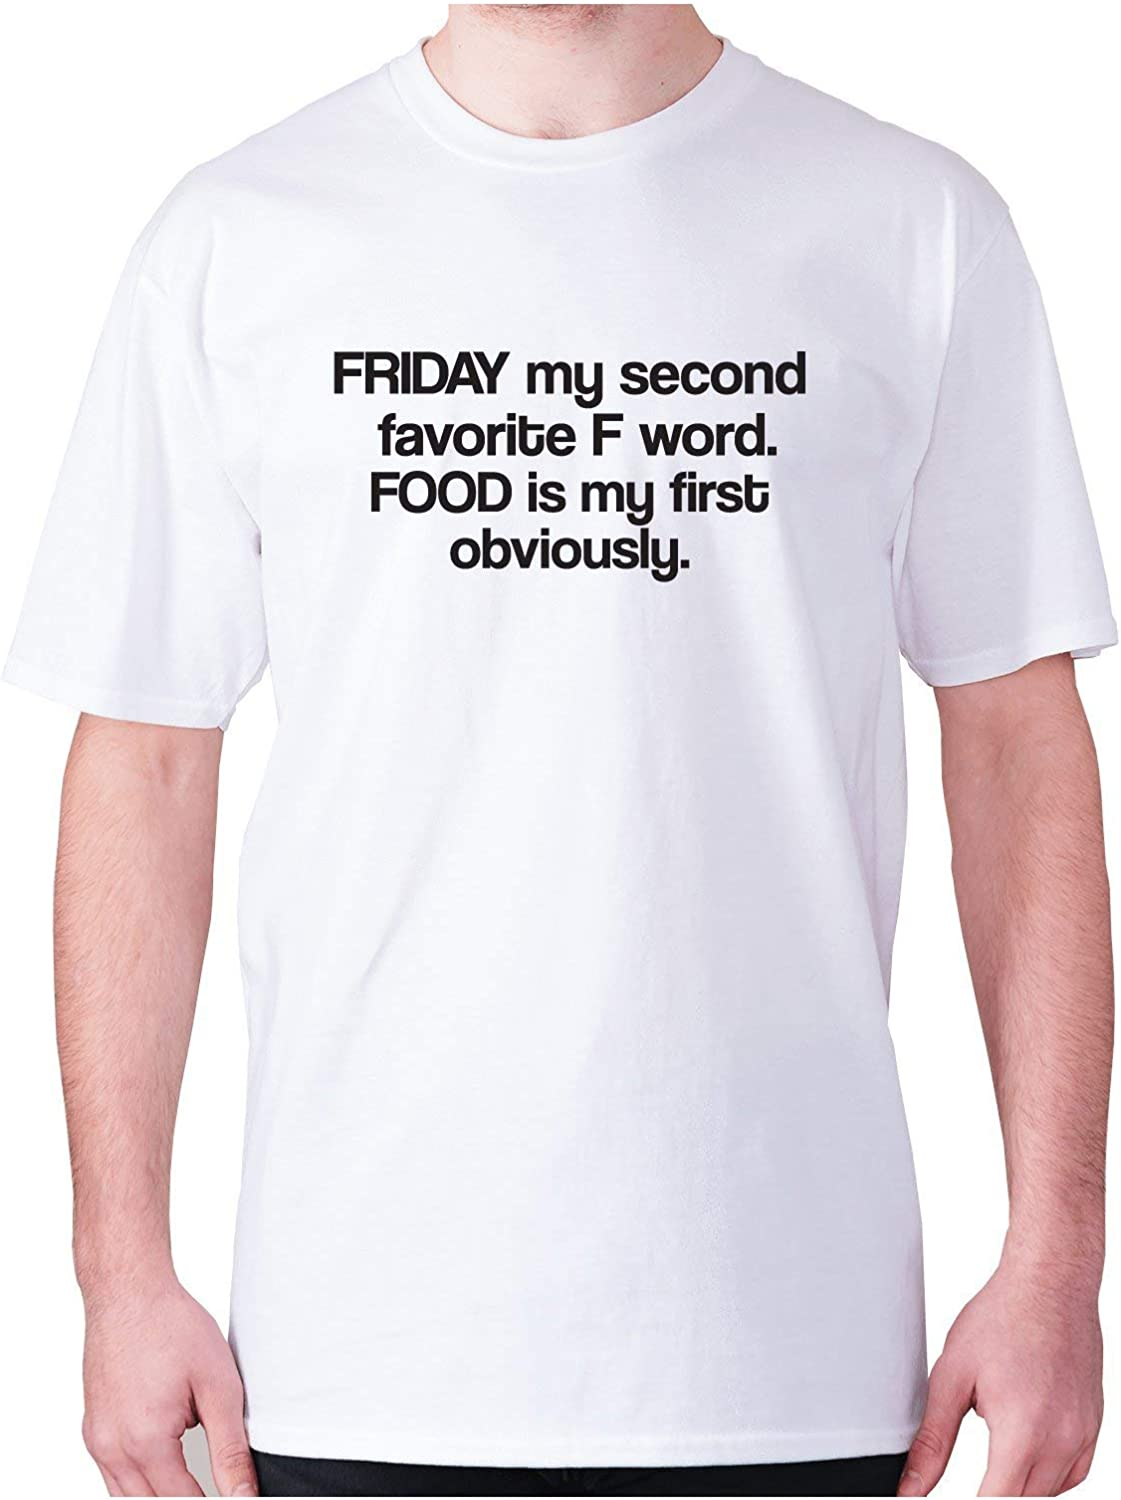 Friday My Second Favorite F Word. Food is My First Obviously - Men's Premium t-Shirt